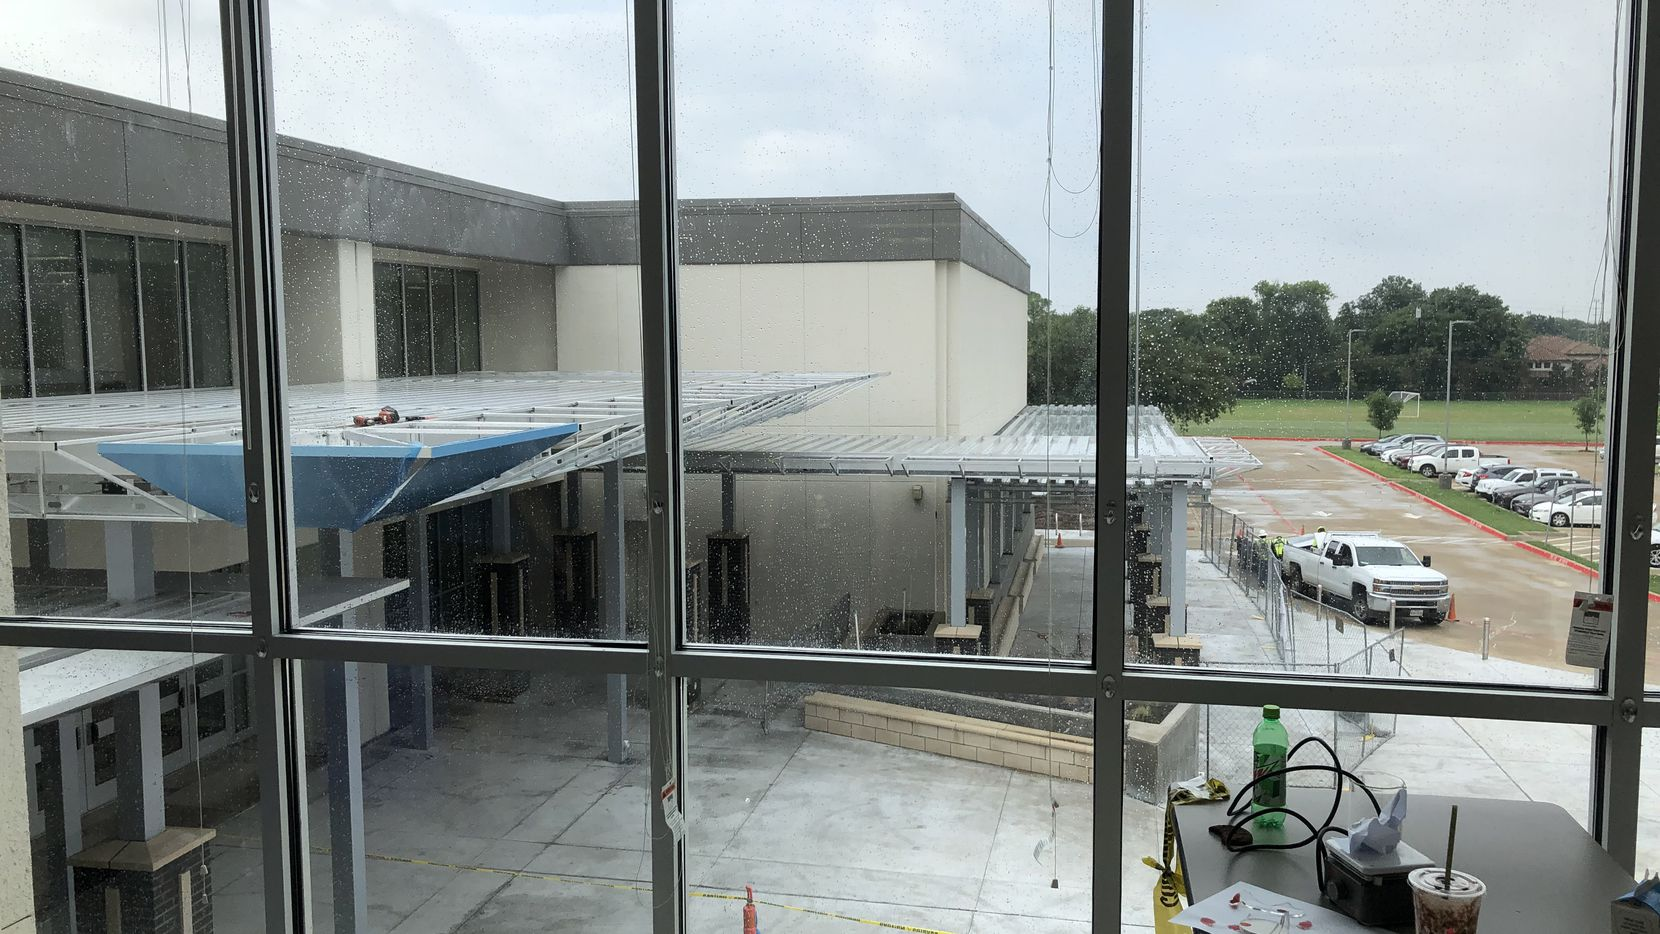 Natural light streams into a science classroom overlooking construction of the new facade of E.D. Walker Middle School and Prestonwood Montessori School in North Dallas. On the table, a science mystery project.